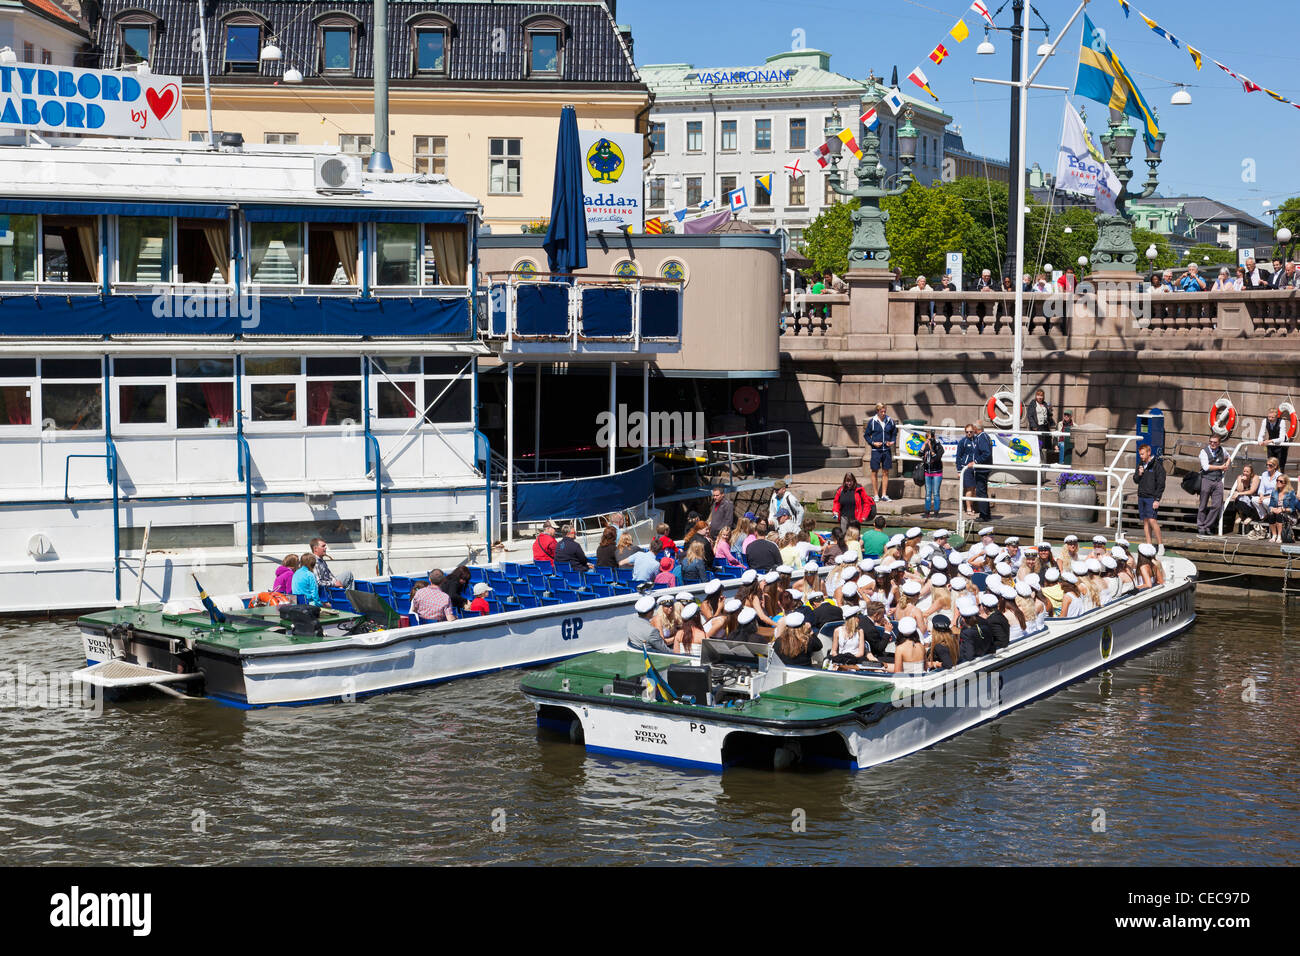 Tourists who travel on sightseeing canal boat Paddan in Gothenburg - Stock Image